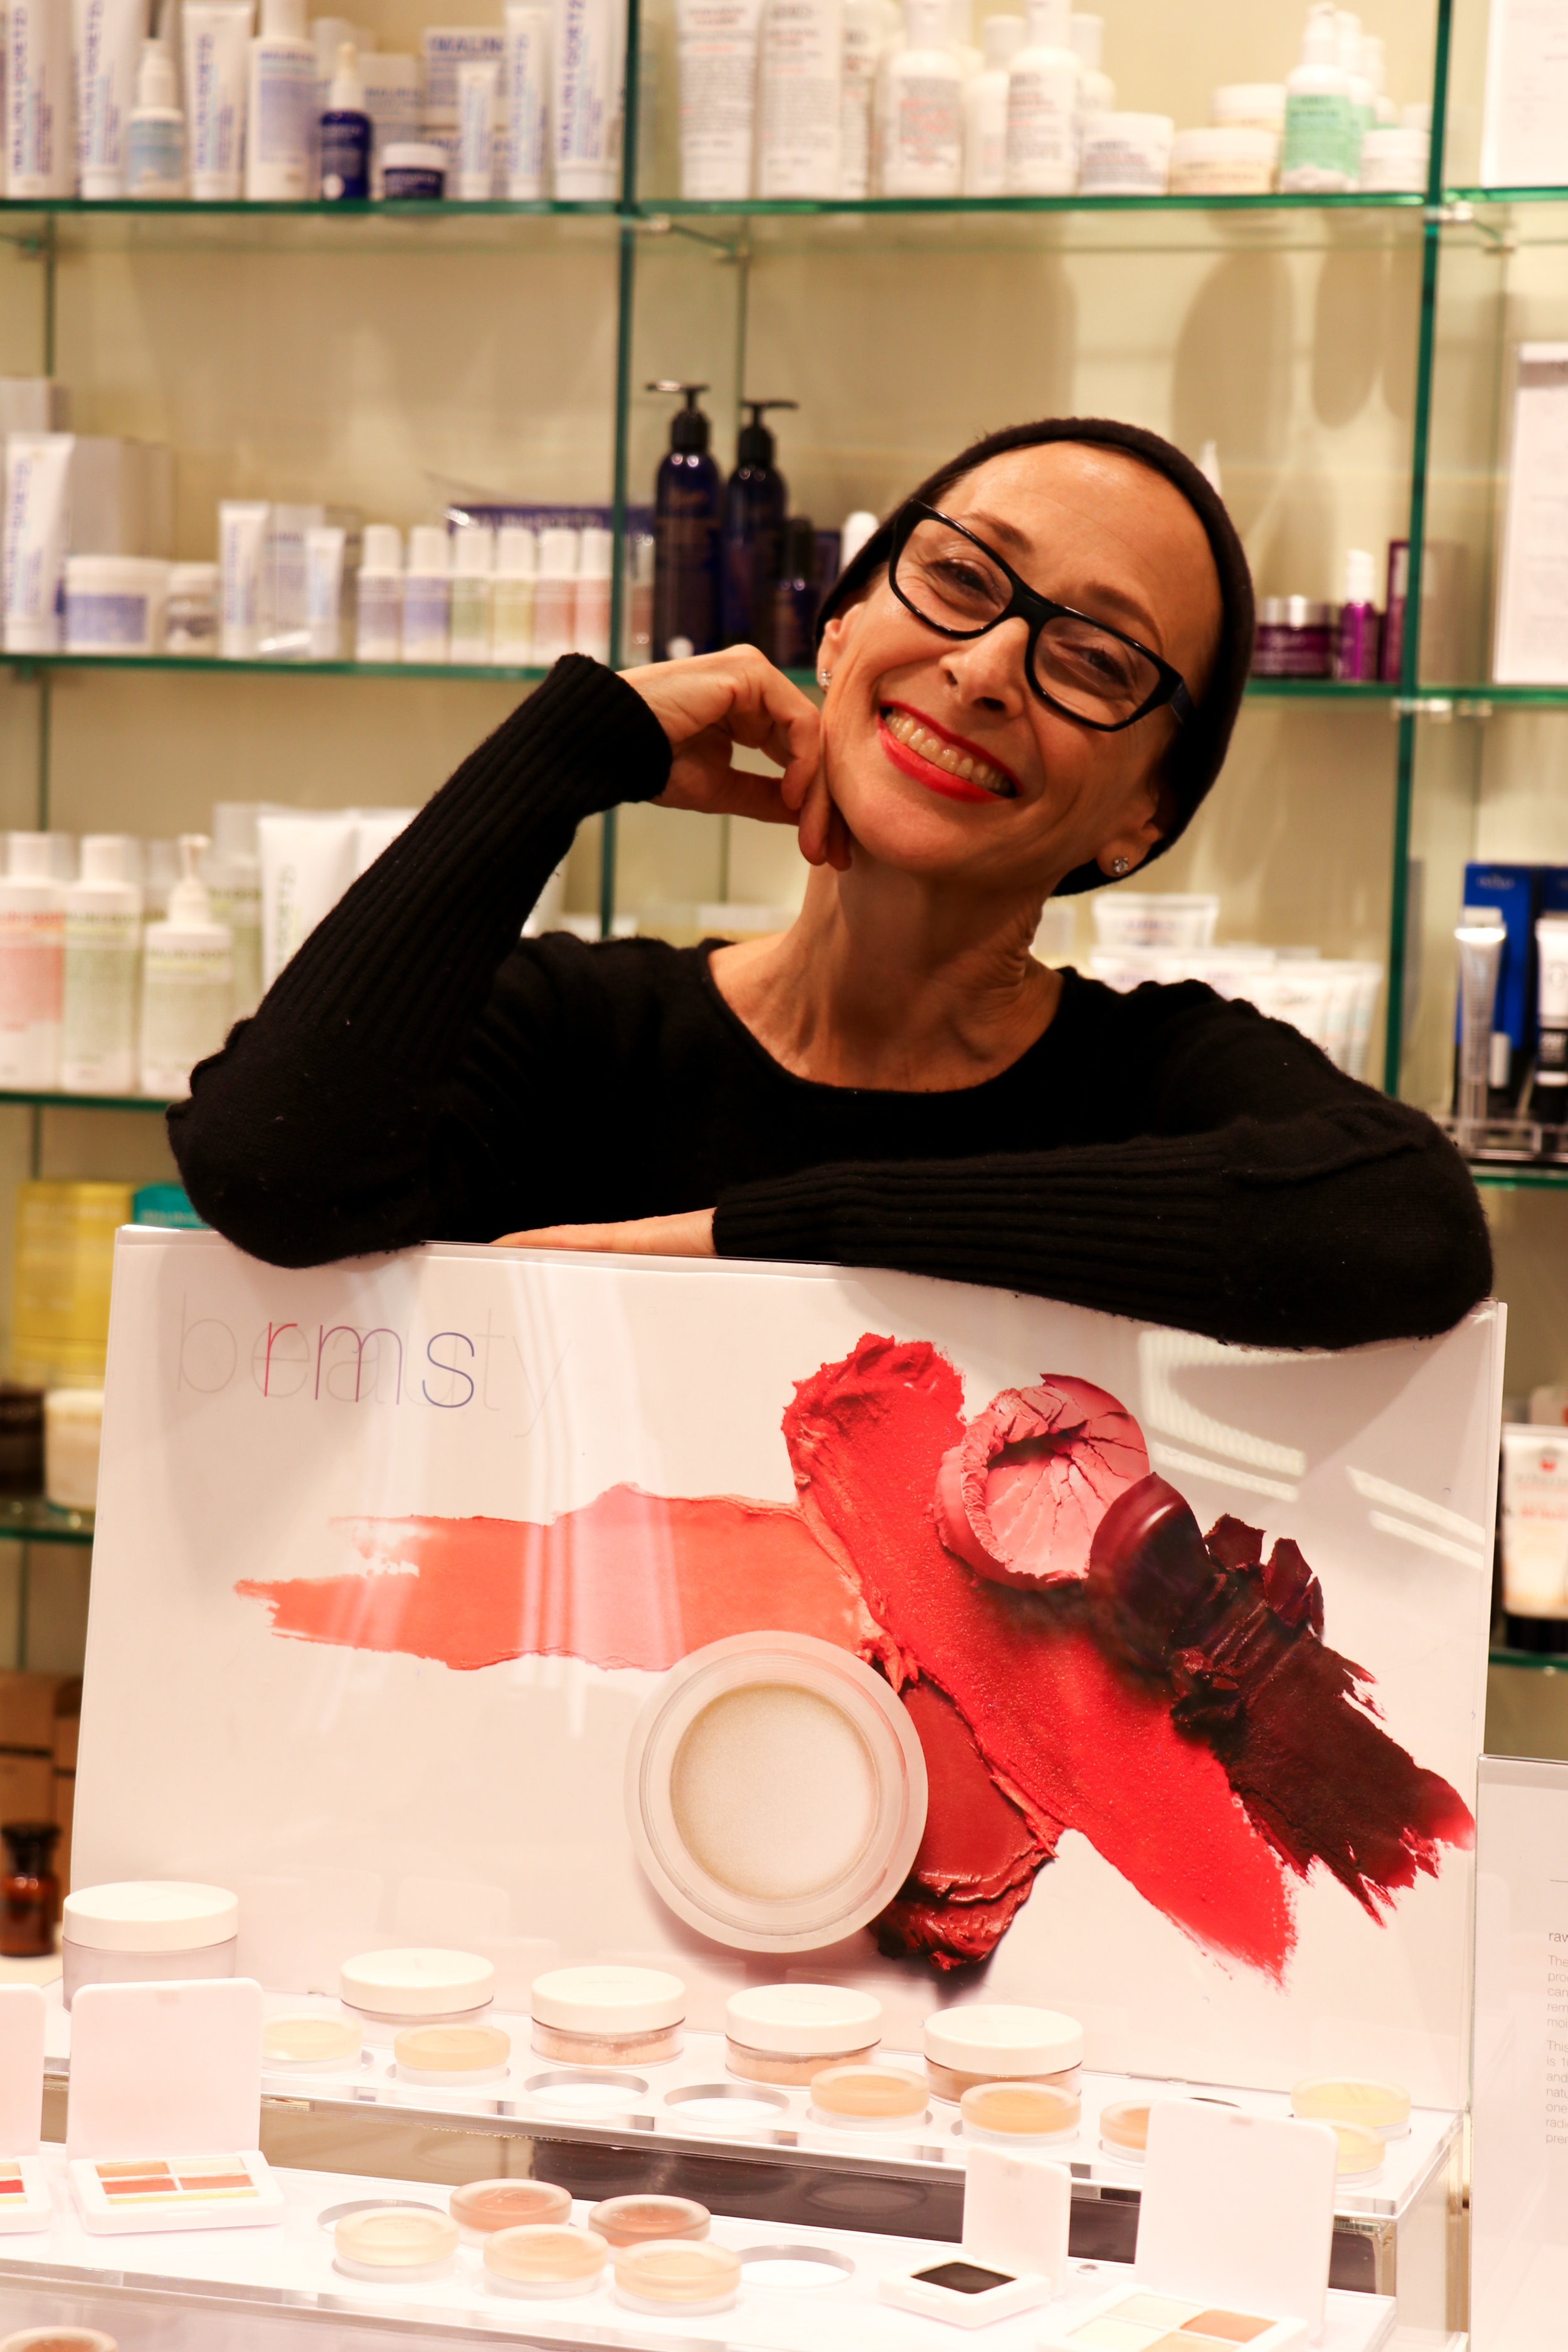 RMS Beauty founder; Rose-Marie Swift